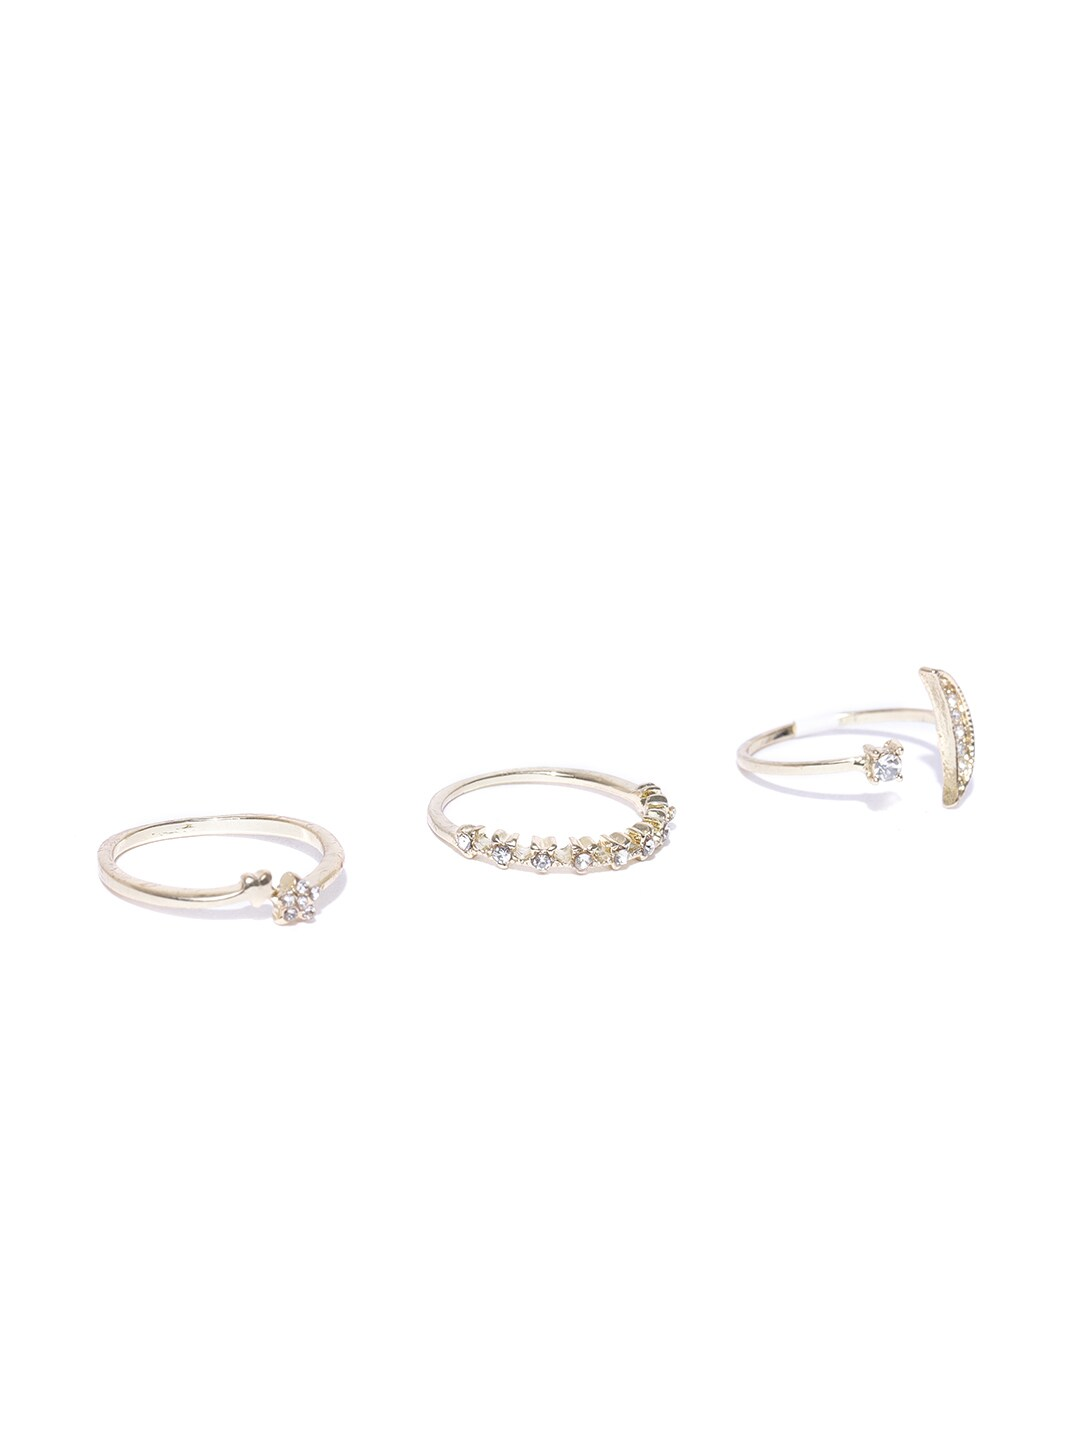 70e7acadc Accessorize Gold Ring - Buy Accessorize Gold Ring online in India